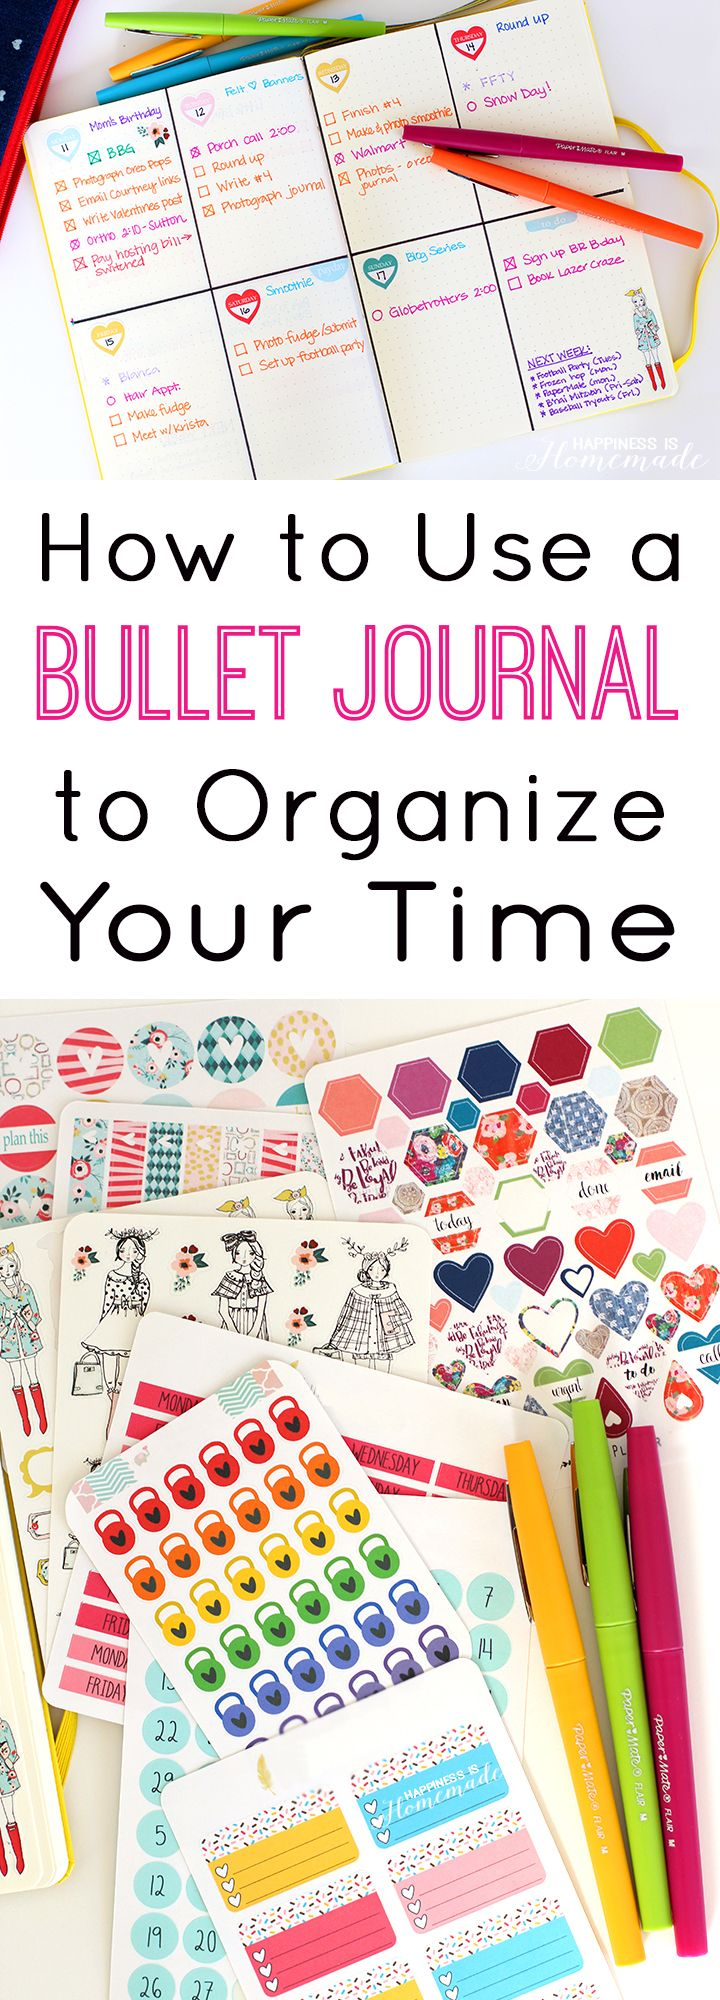 Organize Your Life with Bullet Journaling